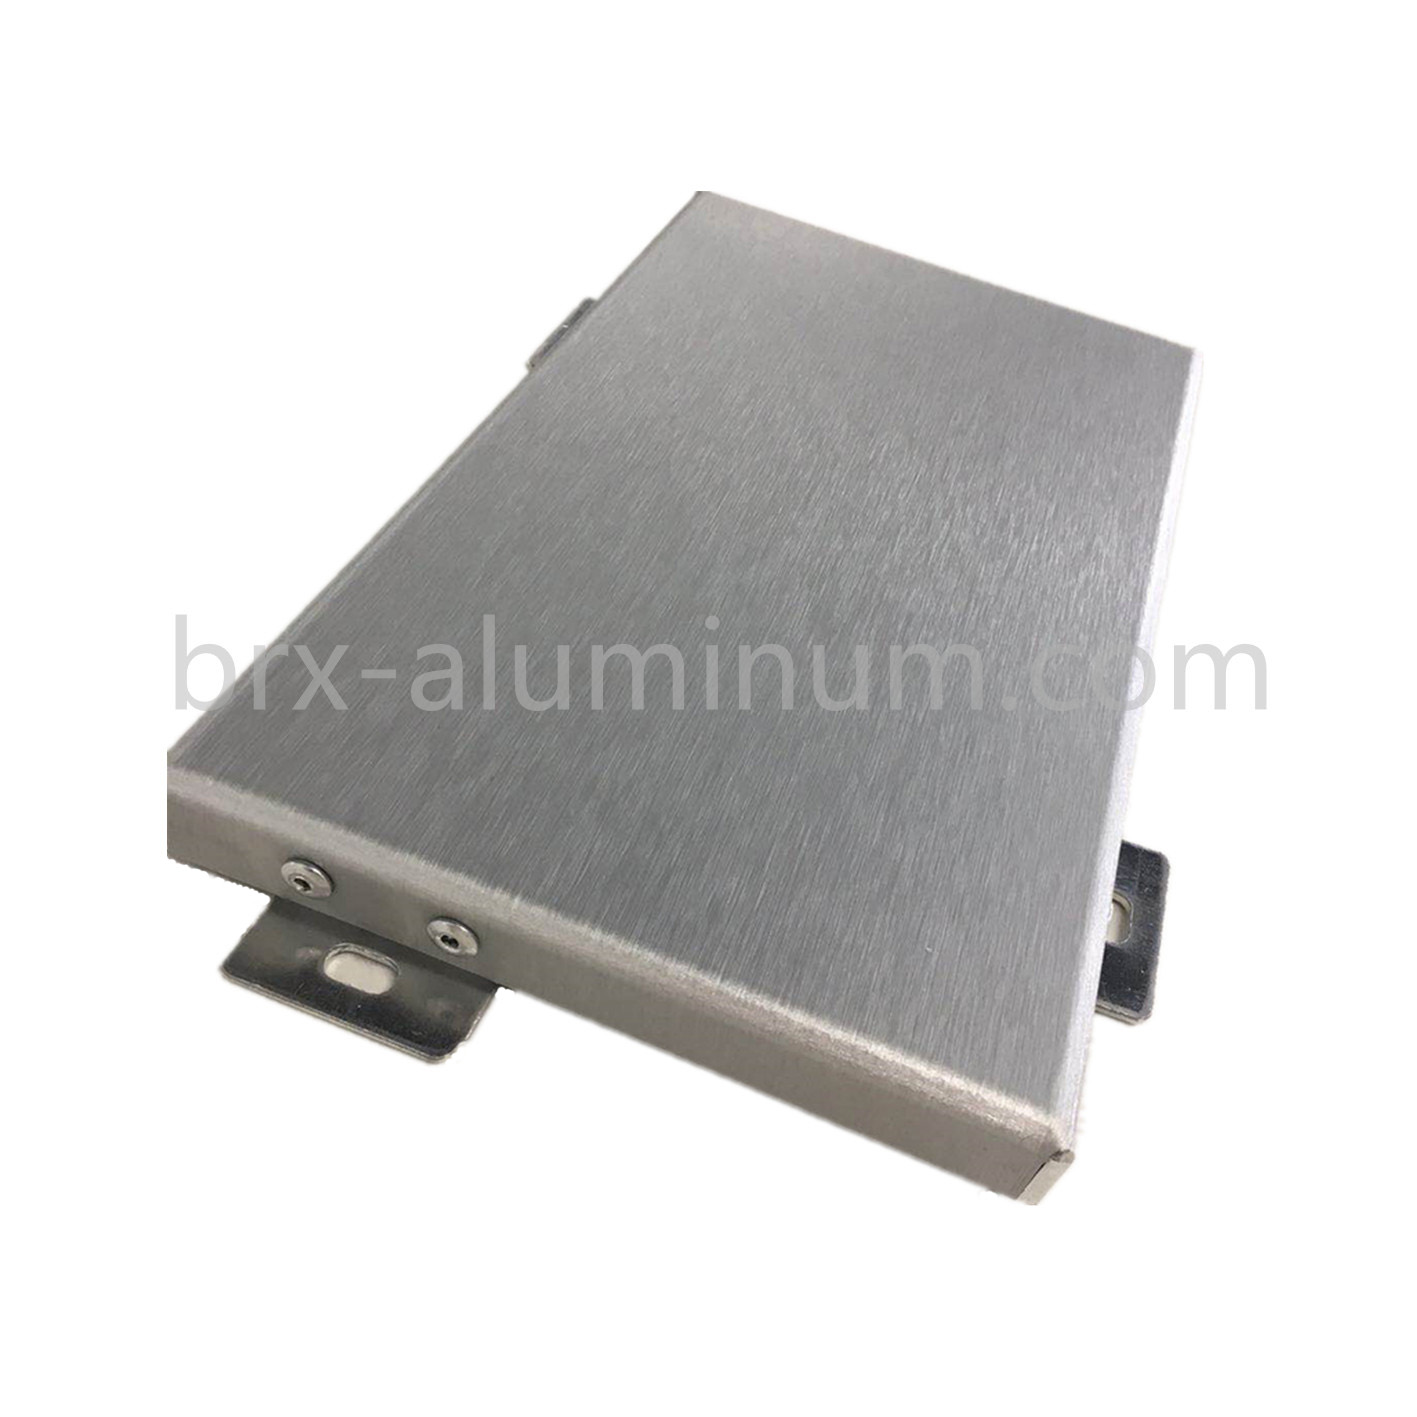 Brushed aluminum plate